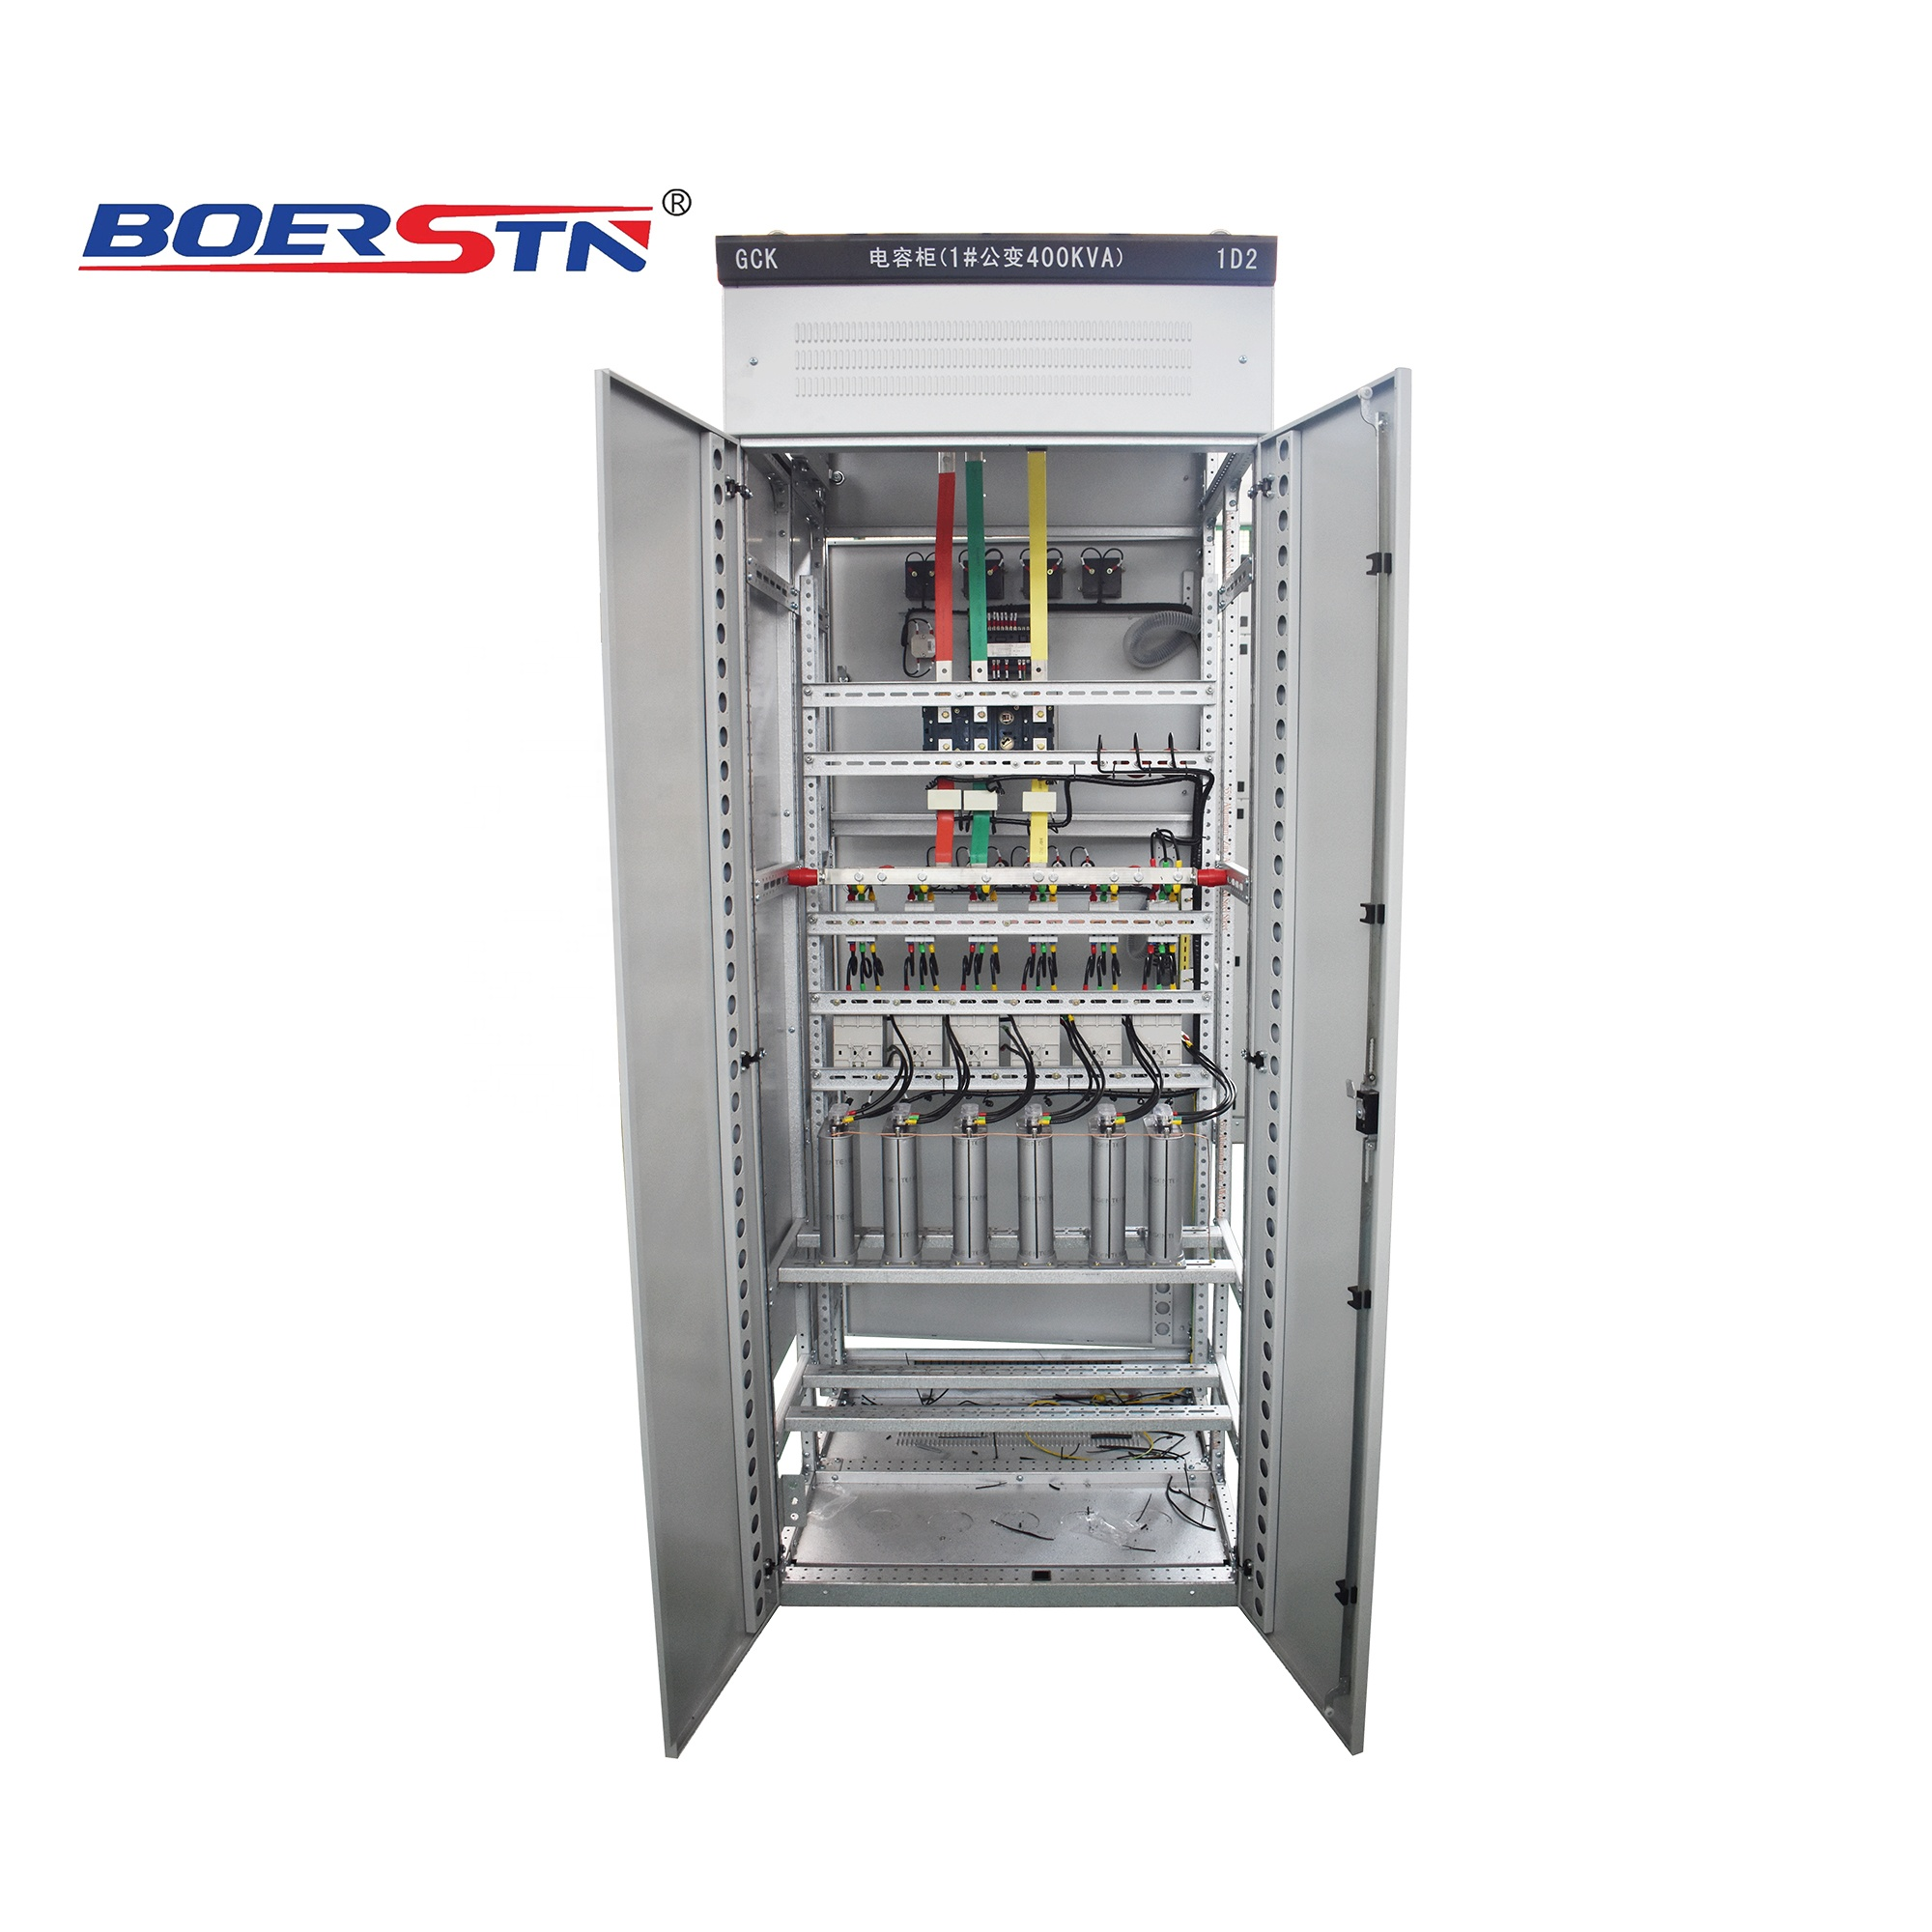 Low Voltage Automatic Power Factor Correction Panel 360kvar Capacitor Bank With Reactive Power Factor Regulator View Low Voltage Capacitor Bank Boerstn Product Details From Boerstn Electric Co Ltd On Alibaba Com